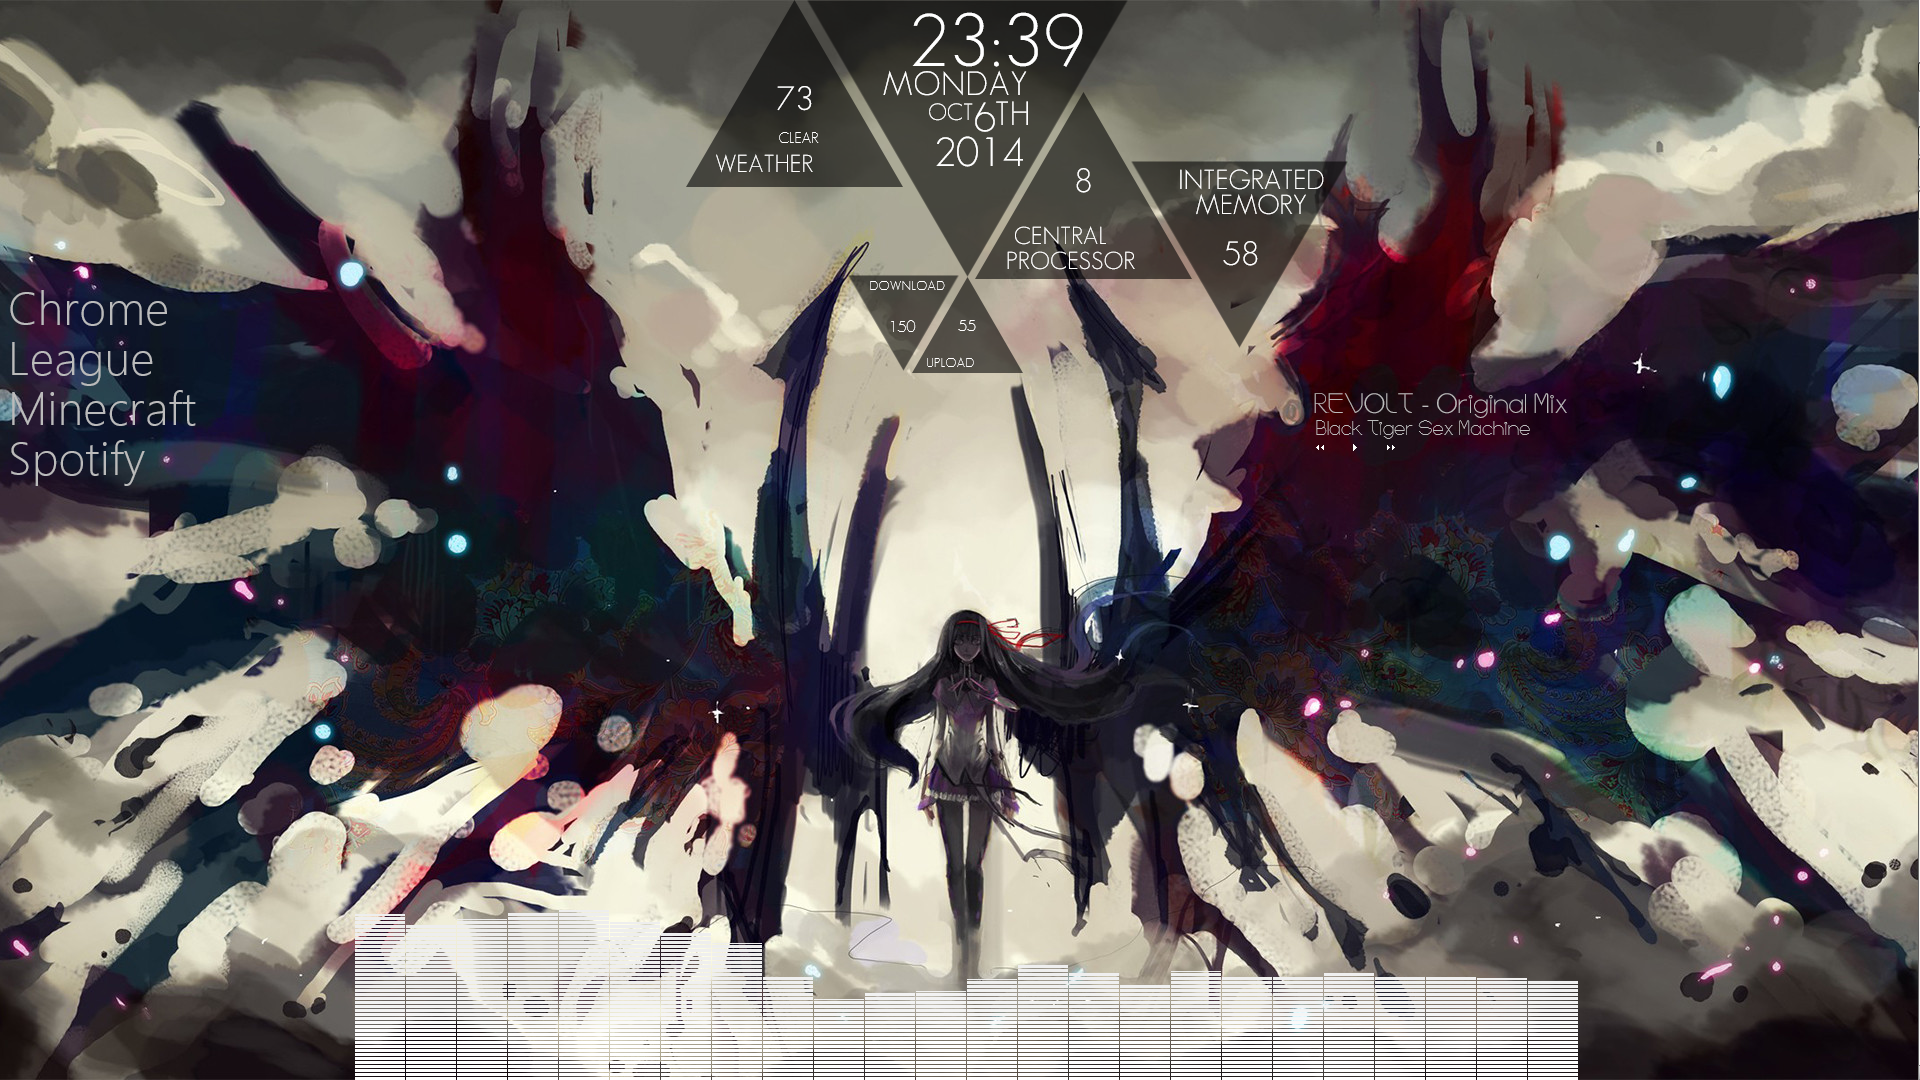 New Linux Visualizer Wallpaper Engine